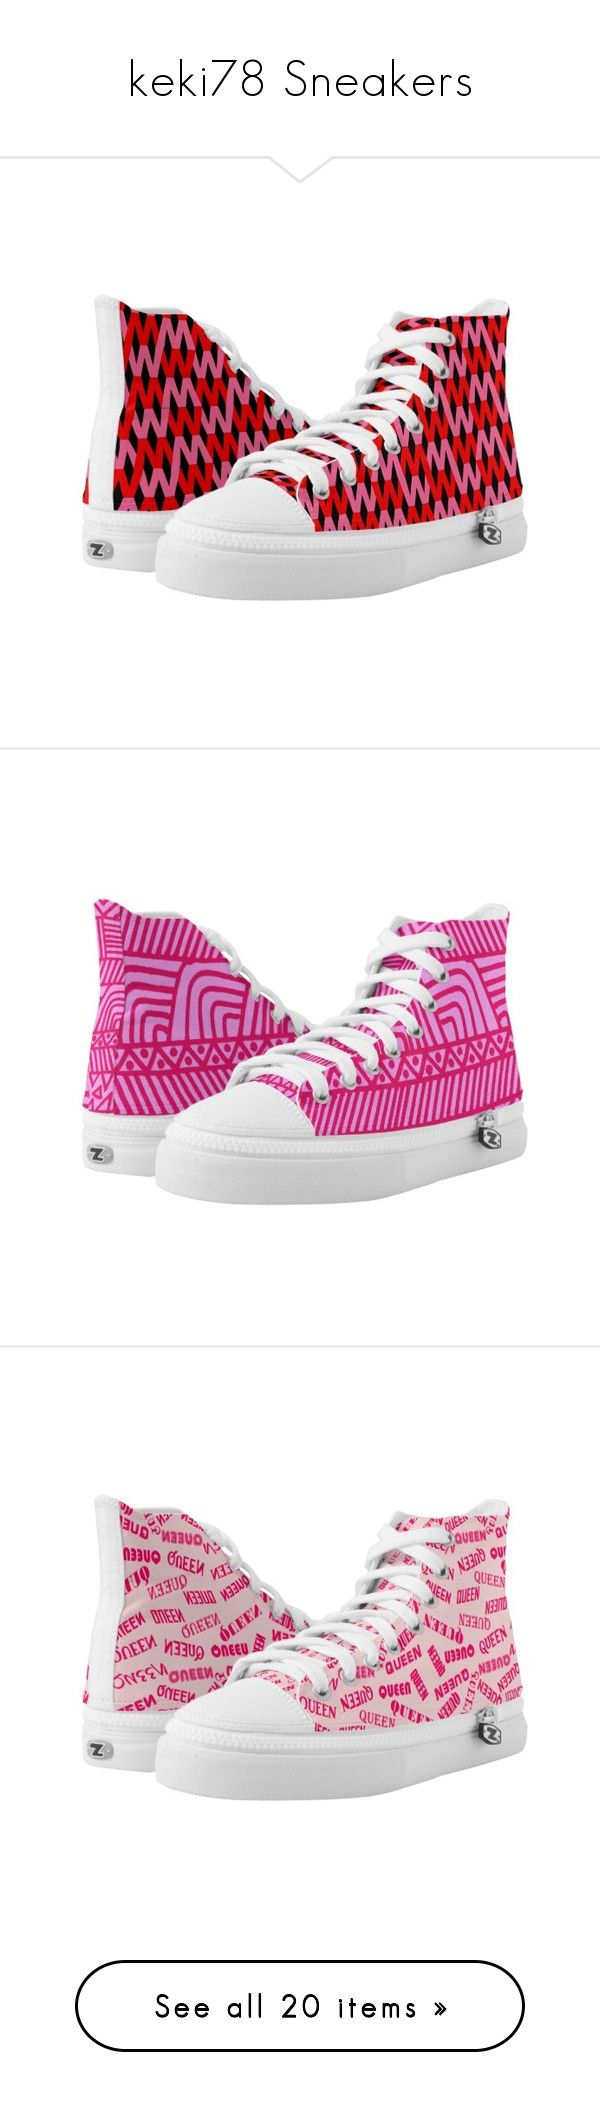 """""""keki78 Sneakers"""" by keki78 ❤ liked on Polyvore featuring shoes, sneakers, red sneakers, high top shoes, pink trainers, red hi top sneakers, pink high top sneakers, print sneakers, pink sneakers and print shoes"""